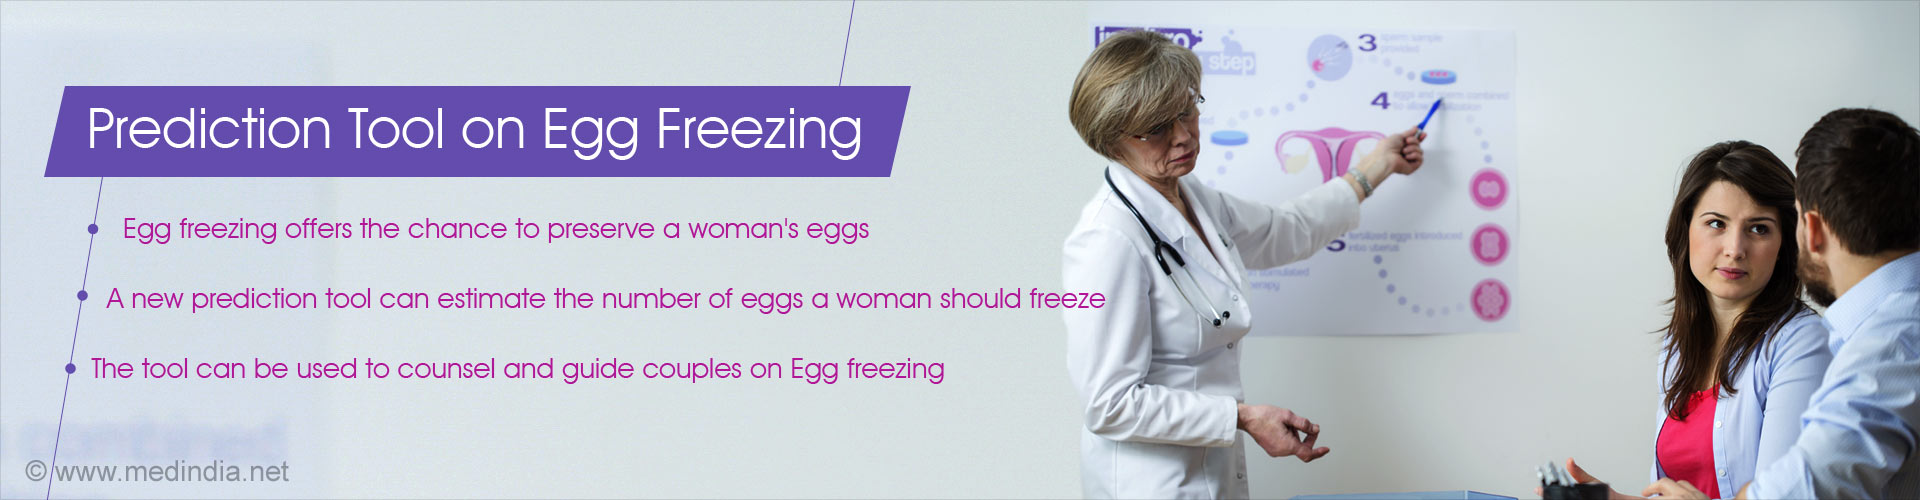 New Prediction Tool That Informs Women About Elective Egg Freezing